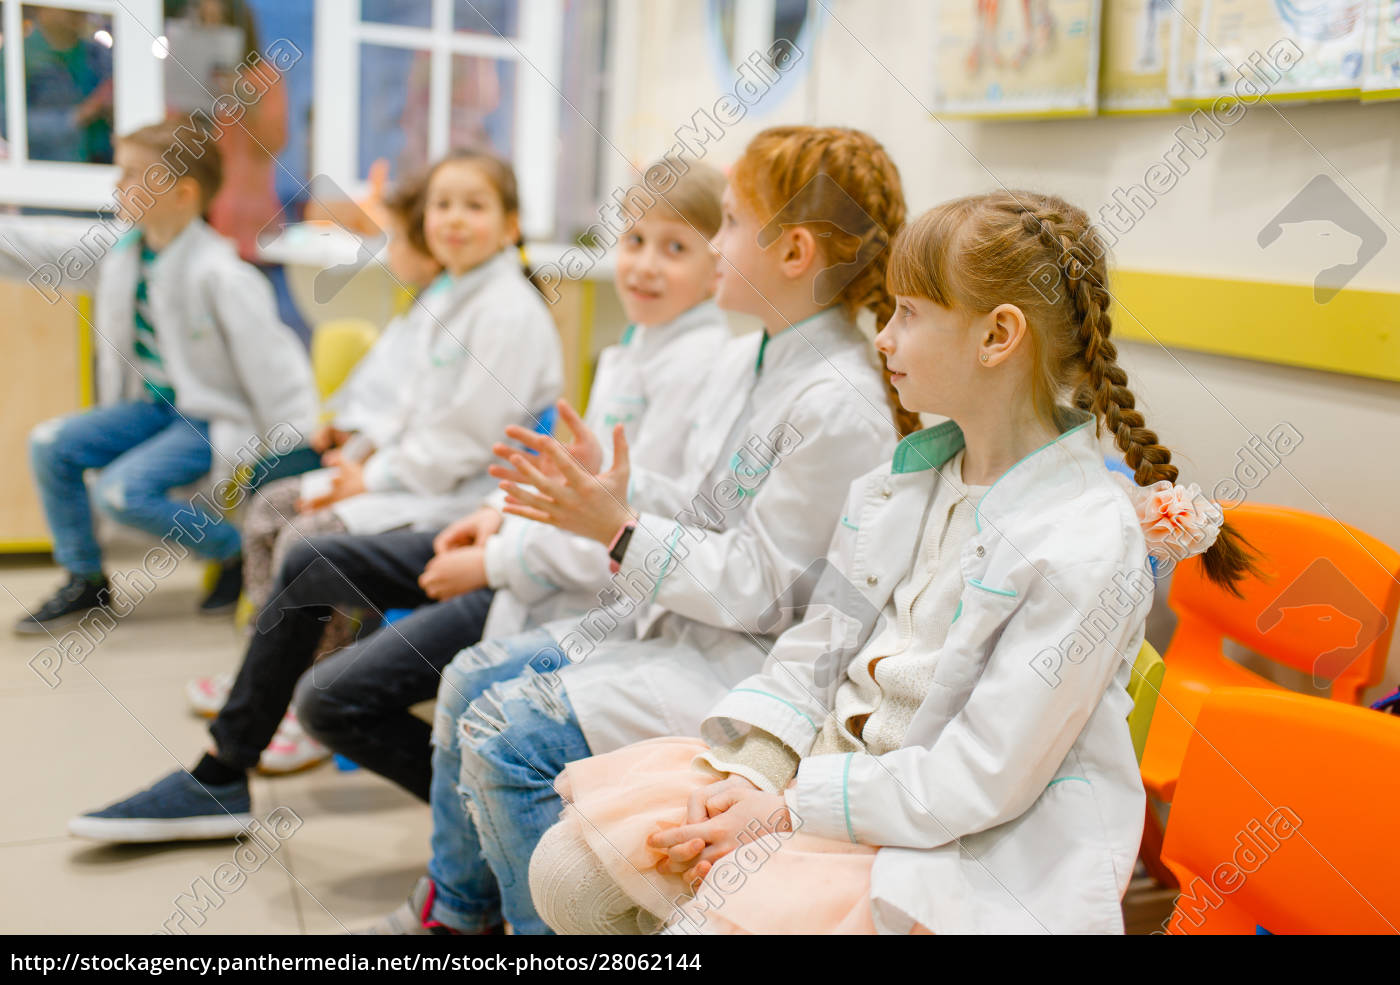 children, learning, doctor, profession, in, classroom - 28062144